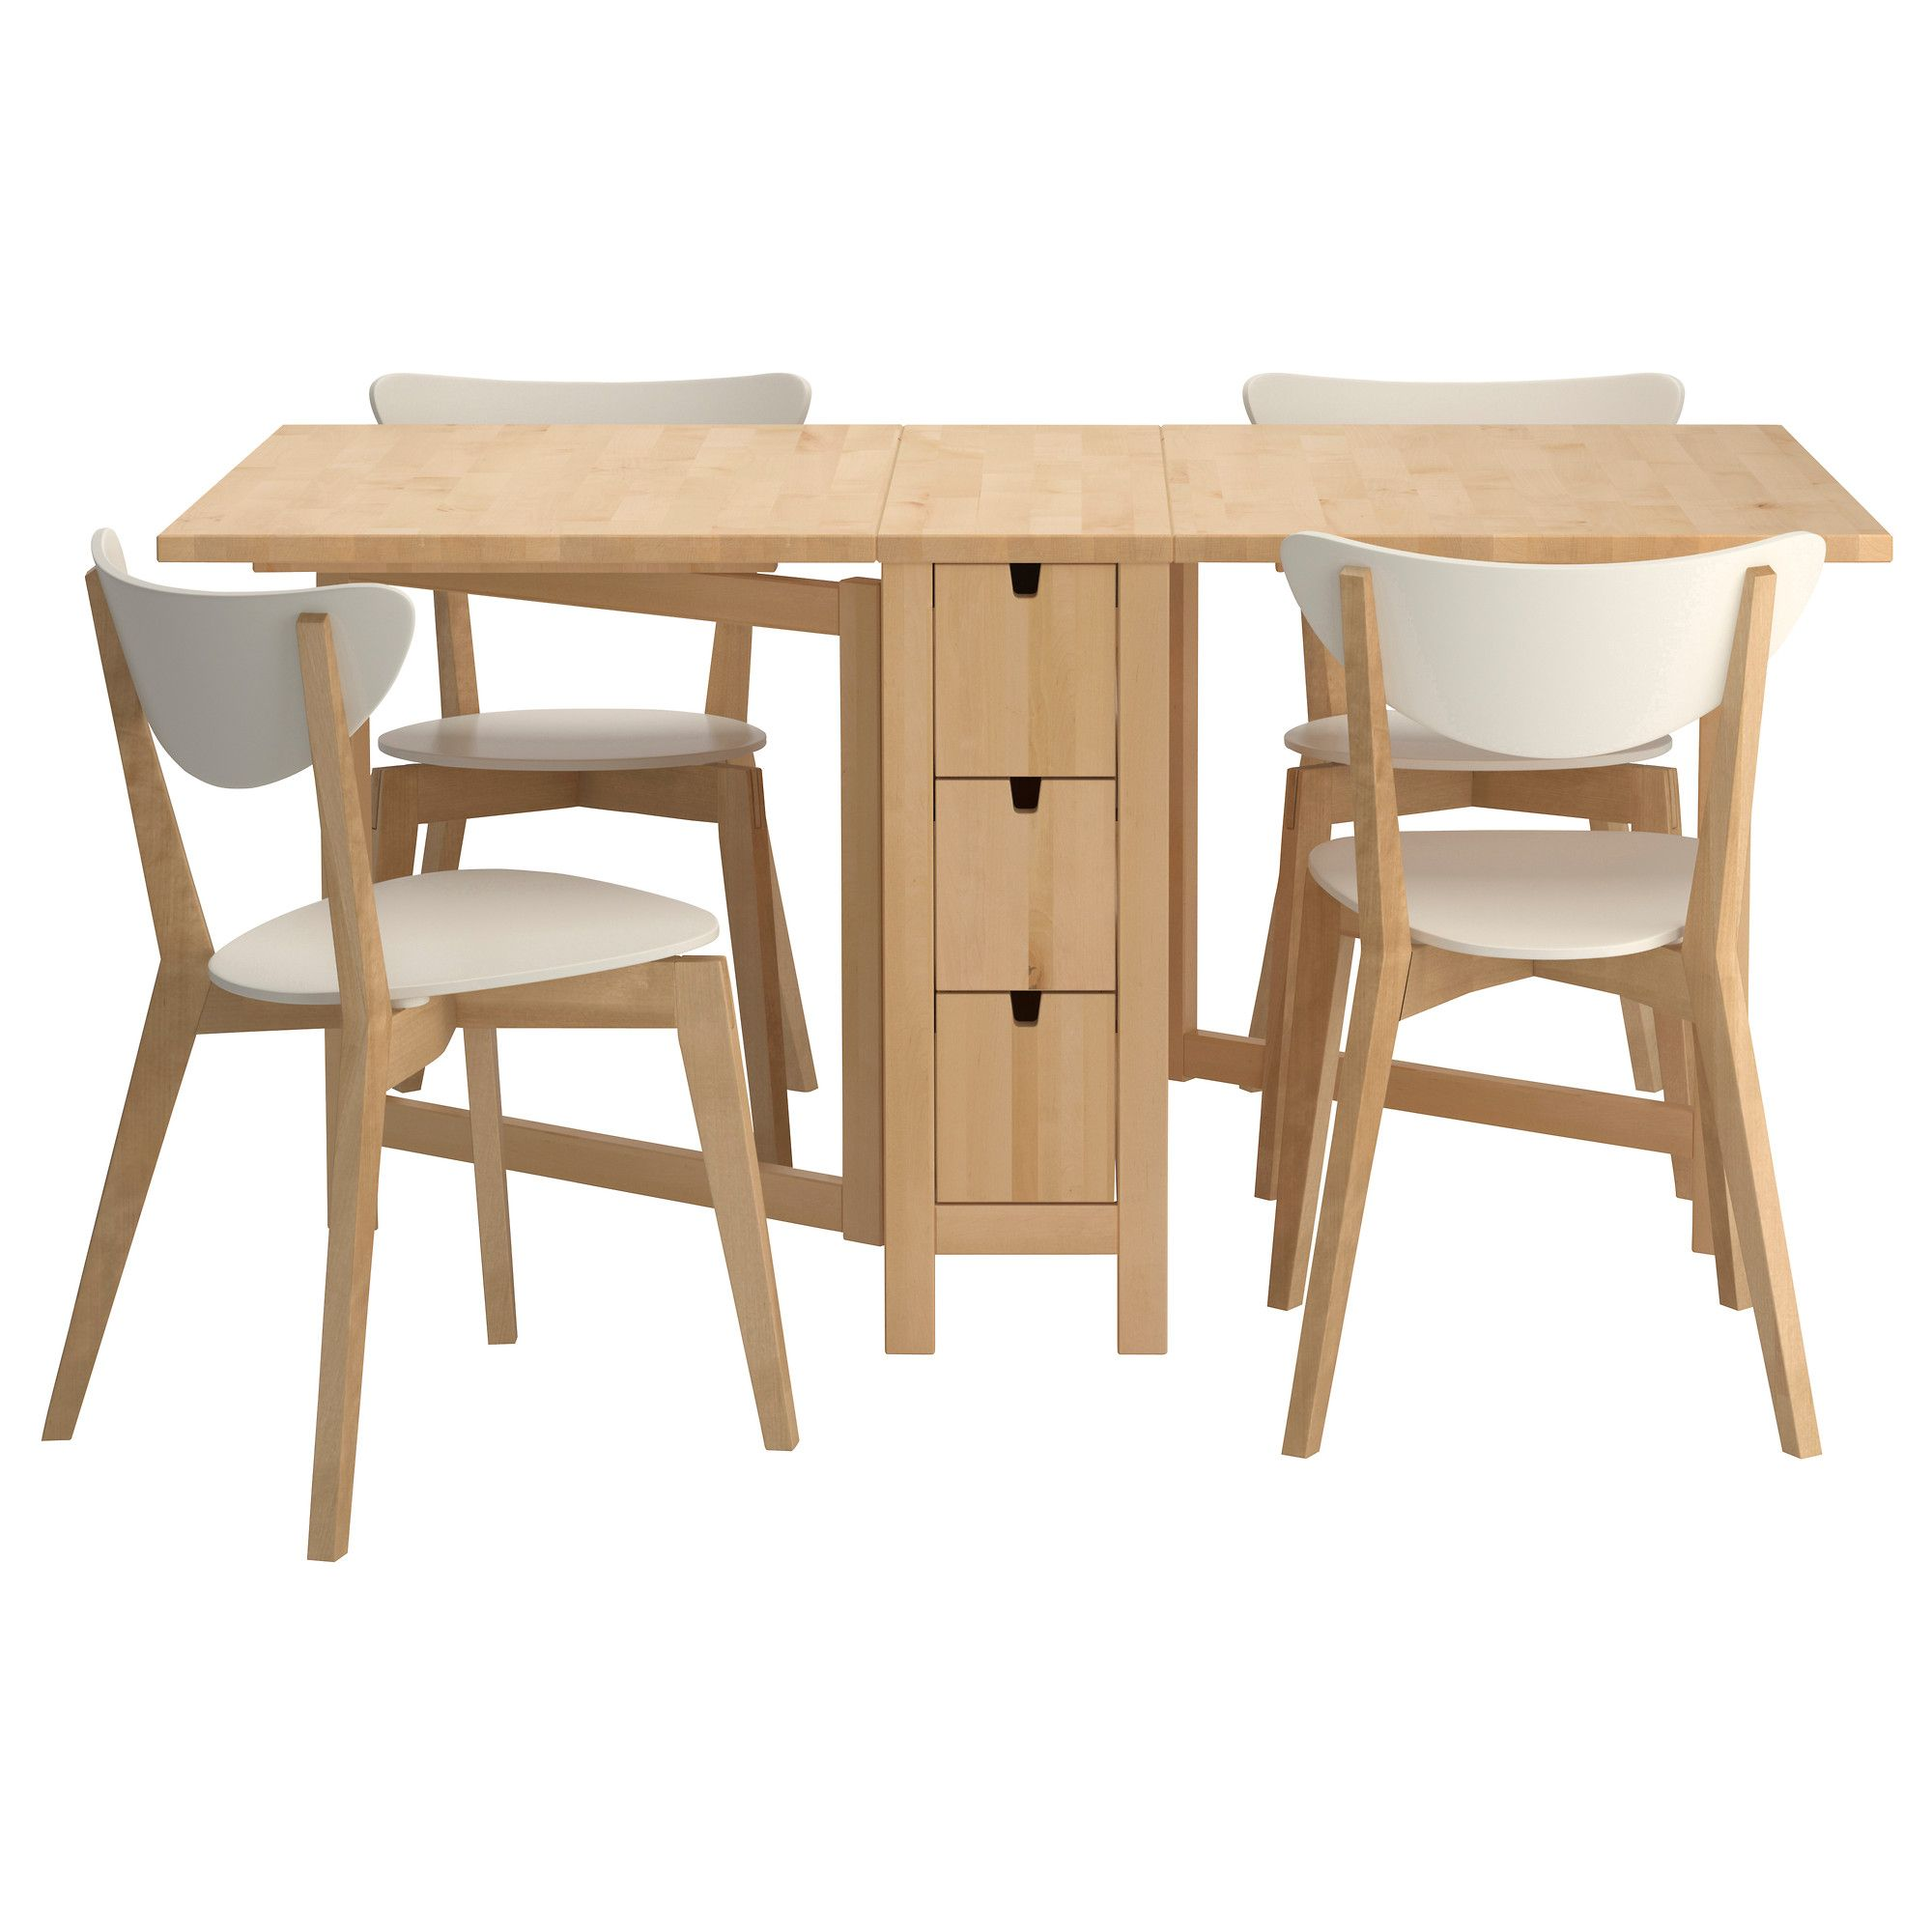 Furniture, Beautiful Maple Wood Veneer Foldable Console Dining Table Set  Maple Wood Veneer Dining Chair With White Padded Seat Design Ideas ~  Folding Dining ... Part 47